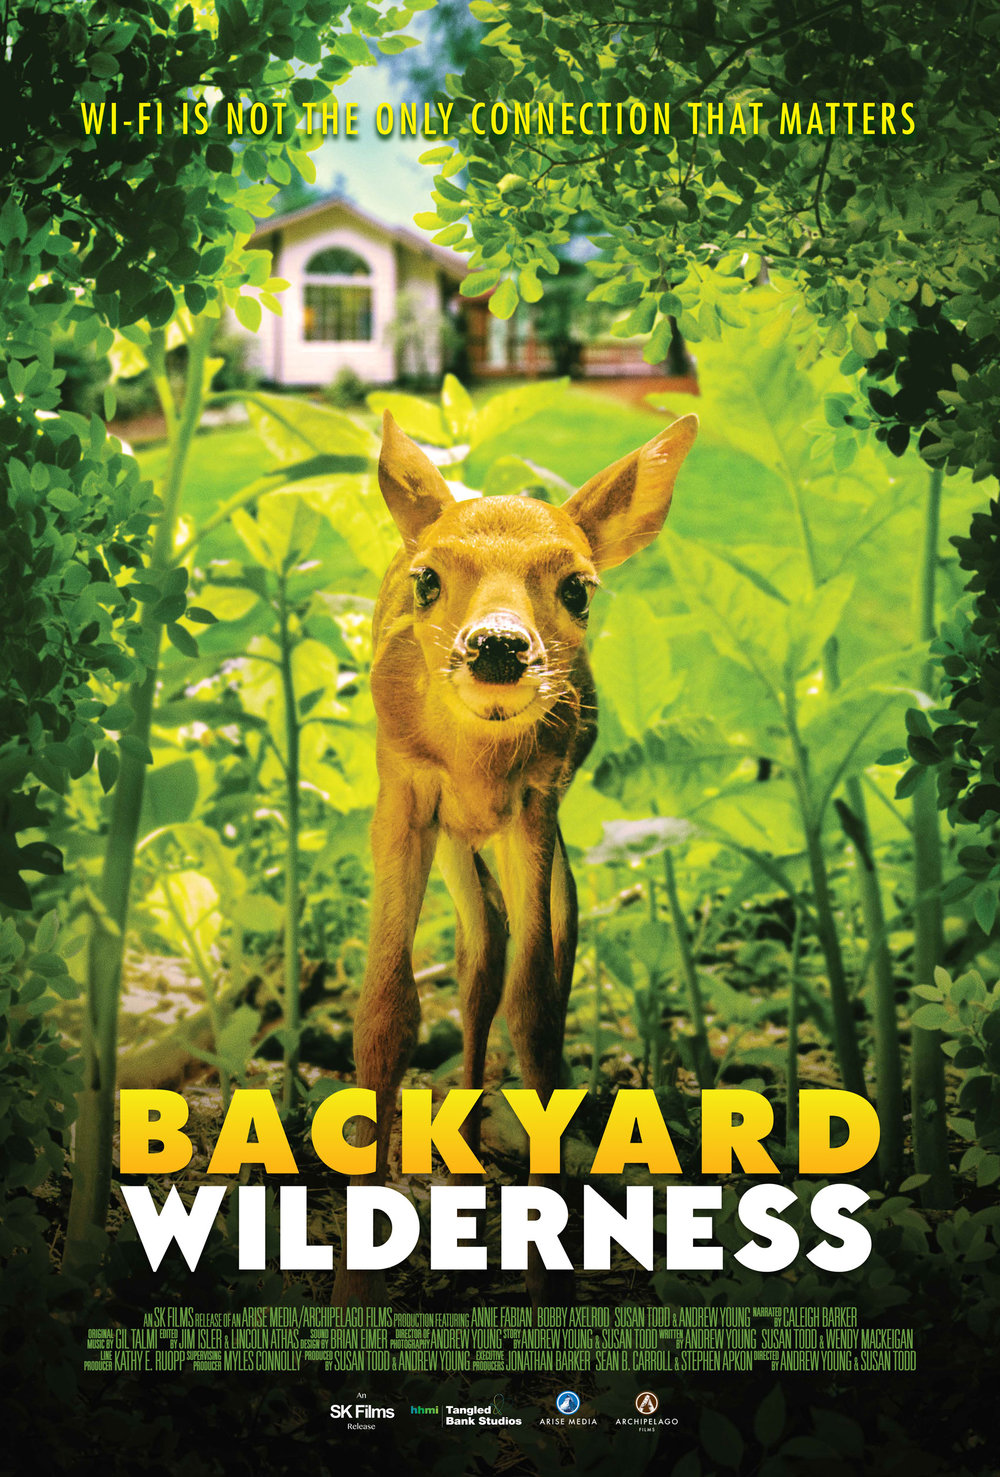 Backyard-Wilderness_Poster-2D_9-Jan-2018_LR.jpg